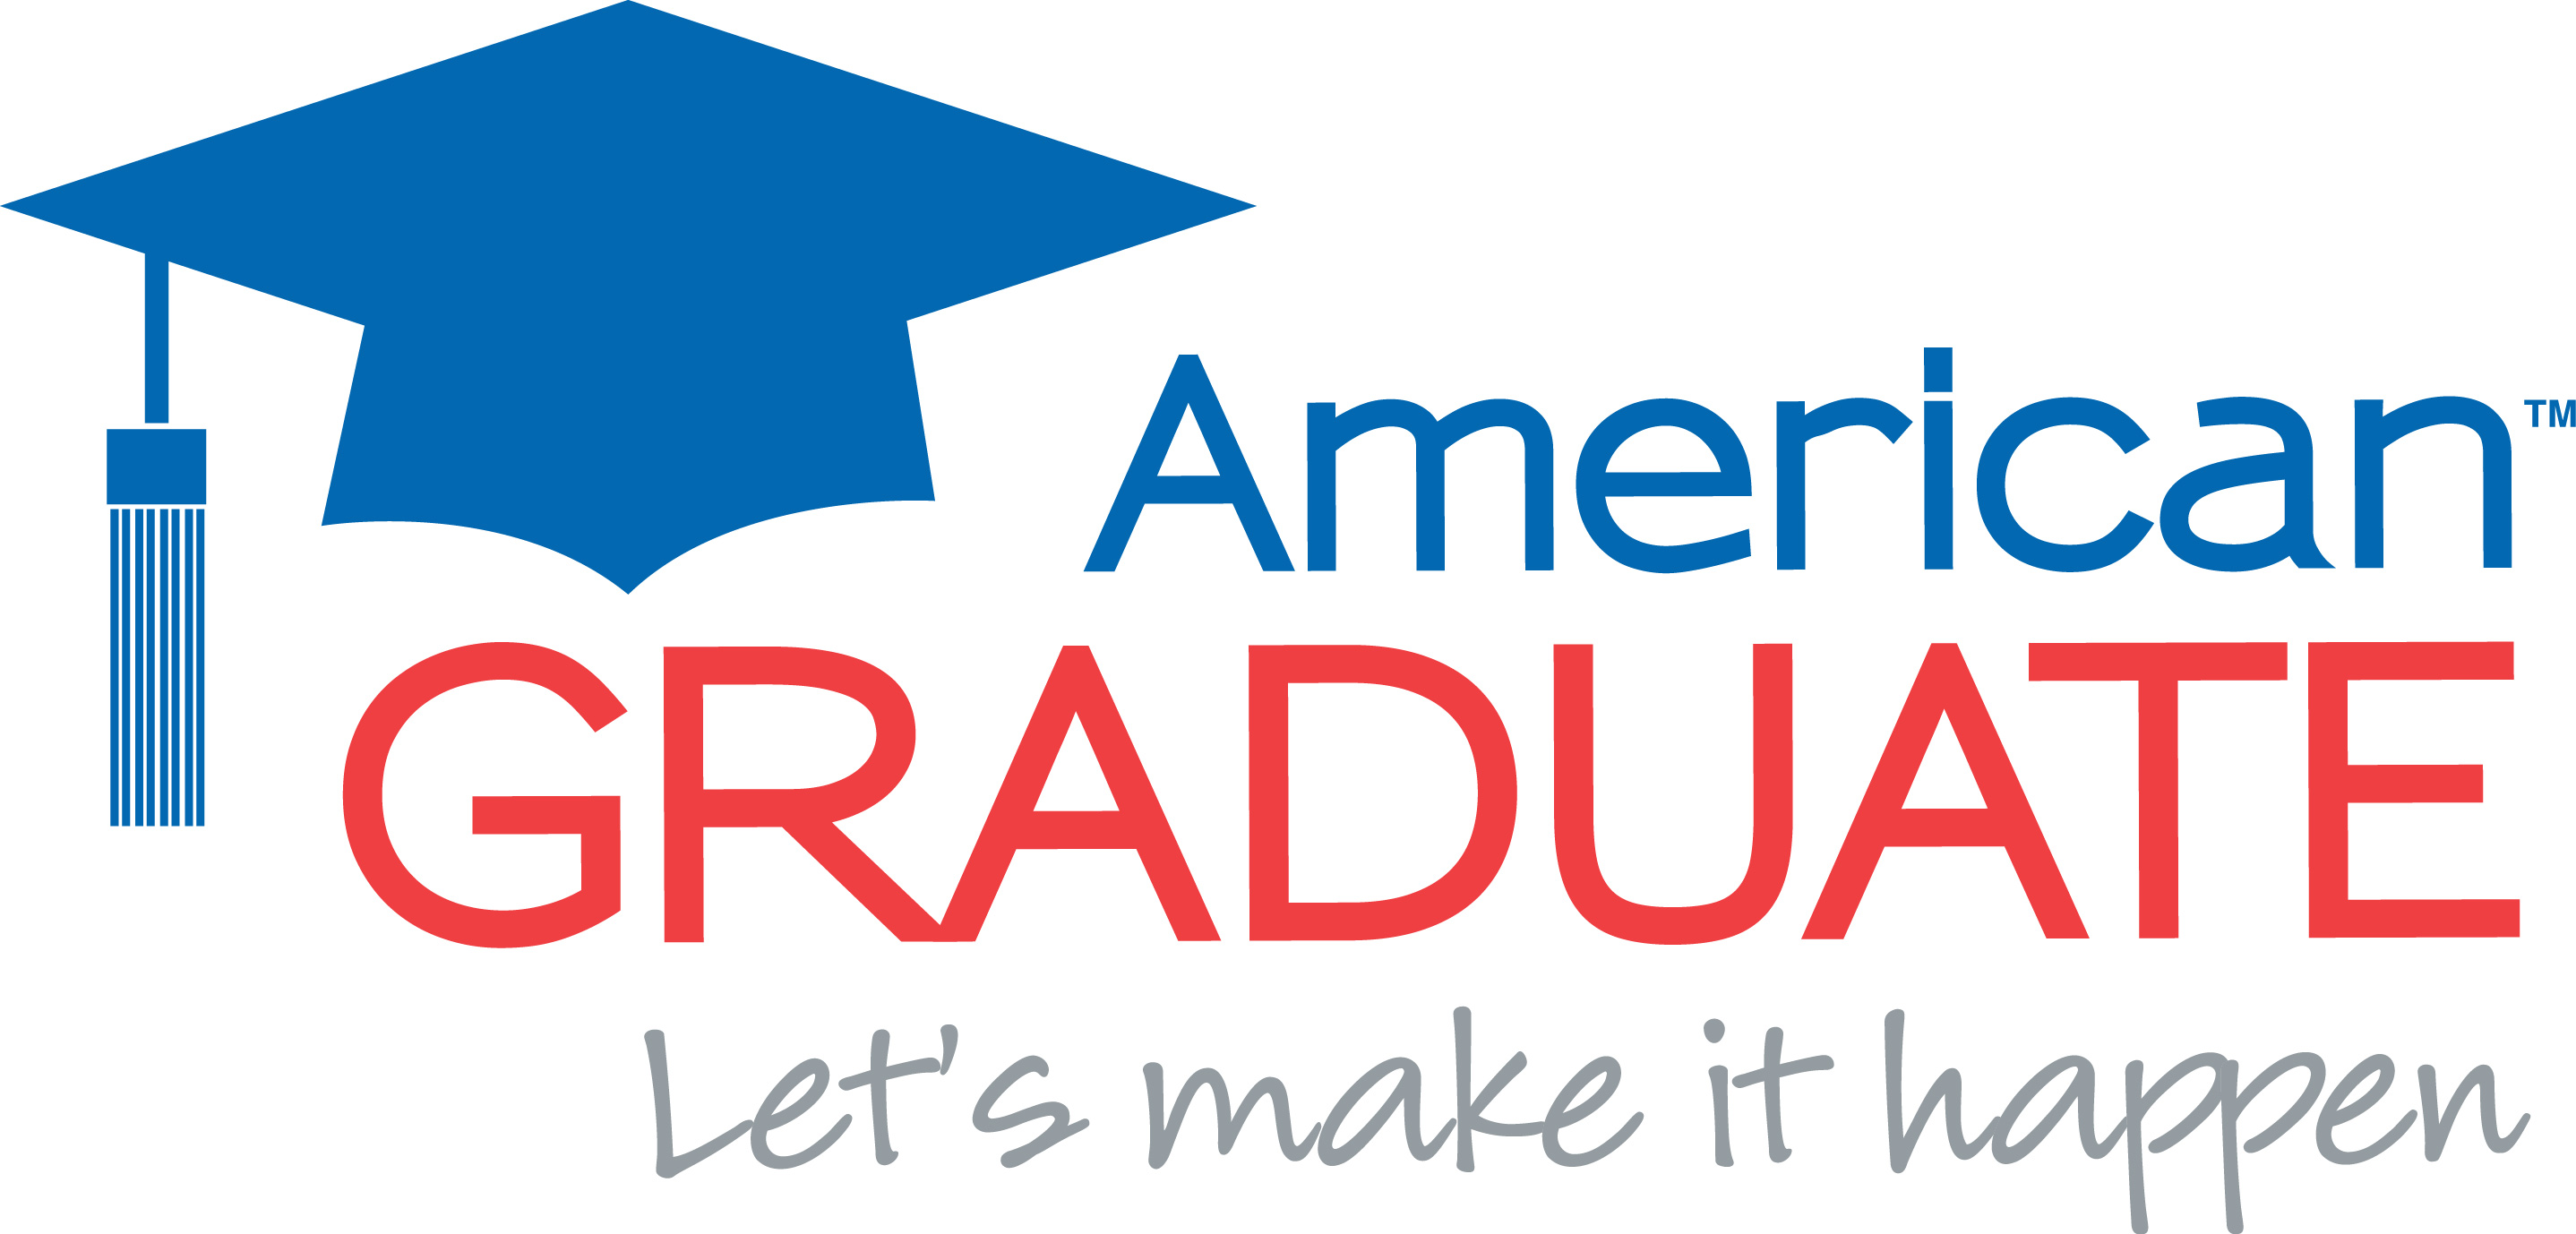 project grad Help support project grad 2017 - thank you for visiting the official fundraising page for cotati-rohnert park project graduation each year, it takes a minimum of $30k to put on this event it keeps our graduates and our community safer on graduation night.